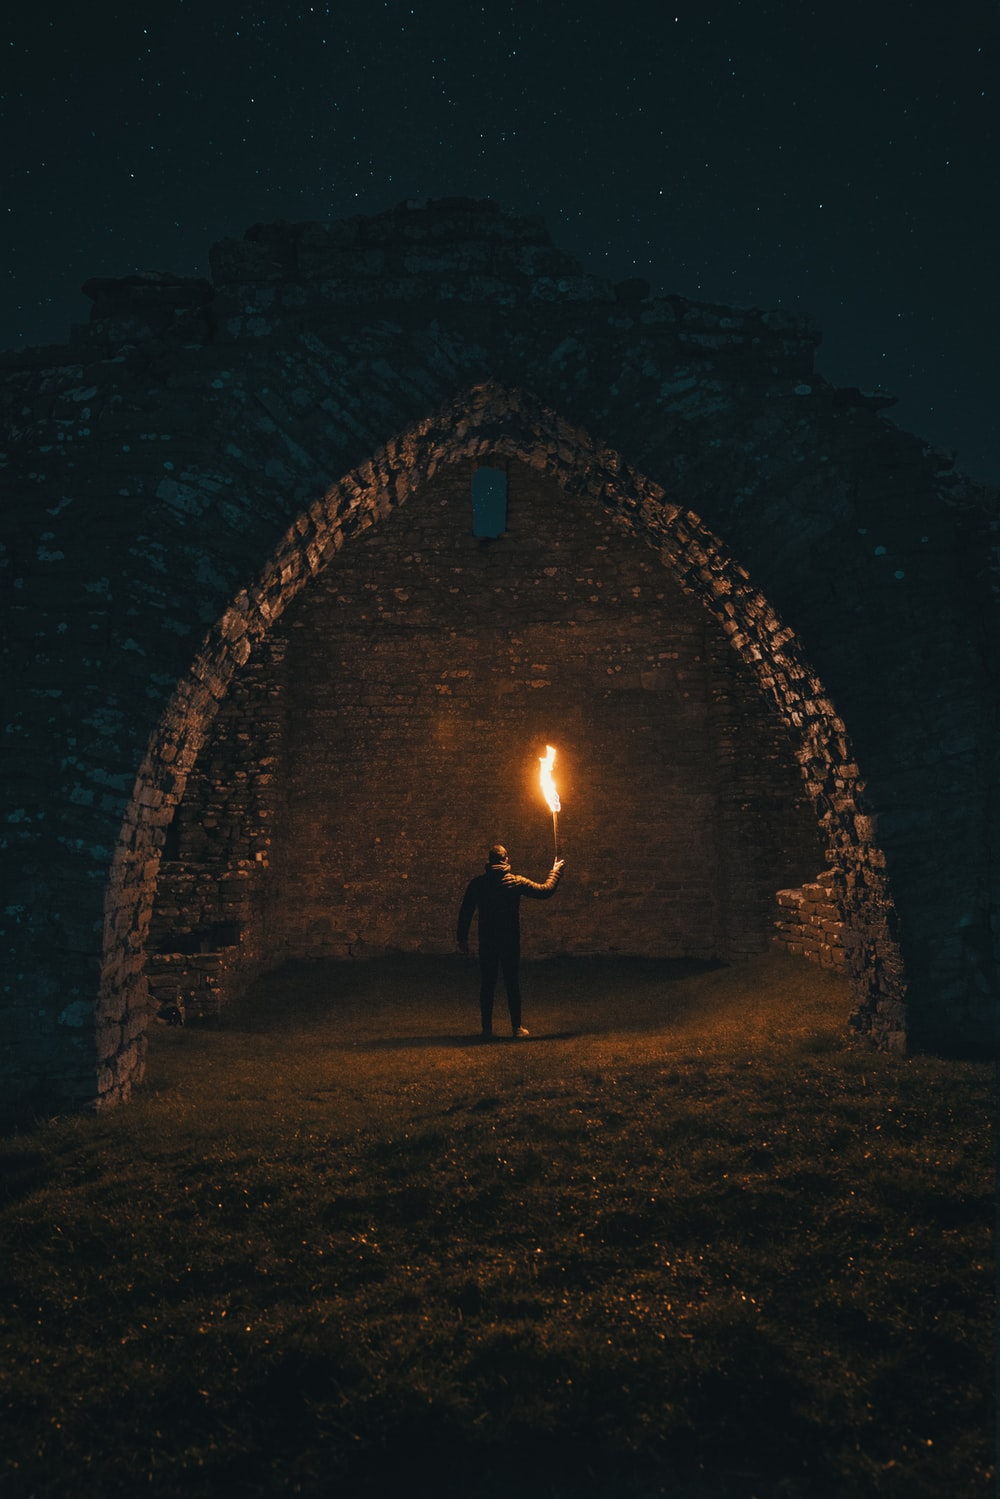 person holding torch in building interior